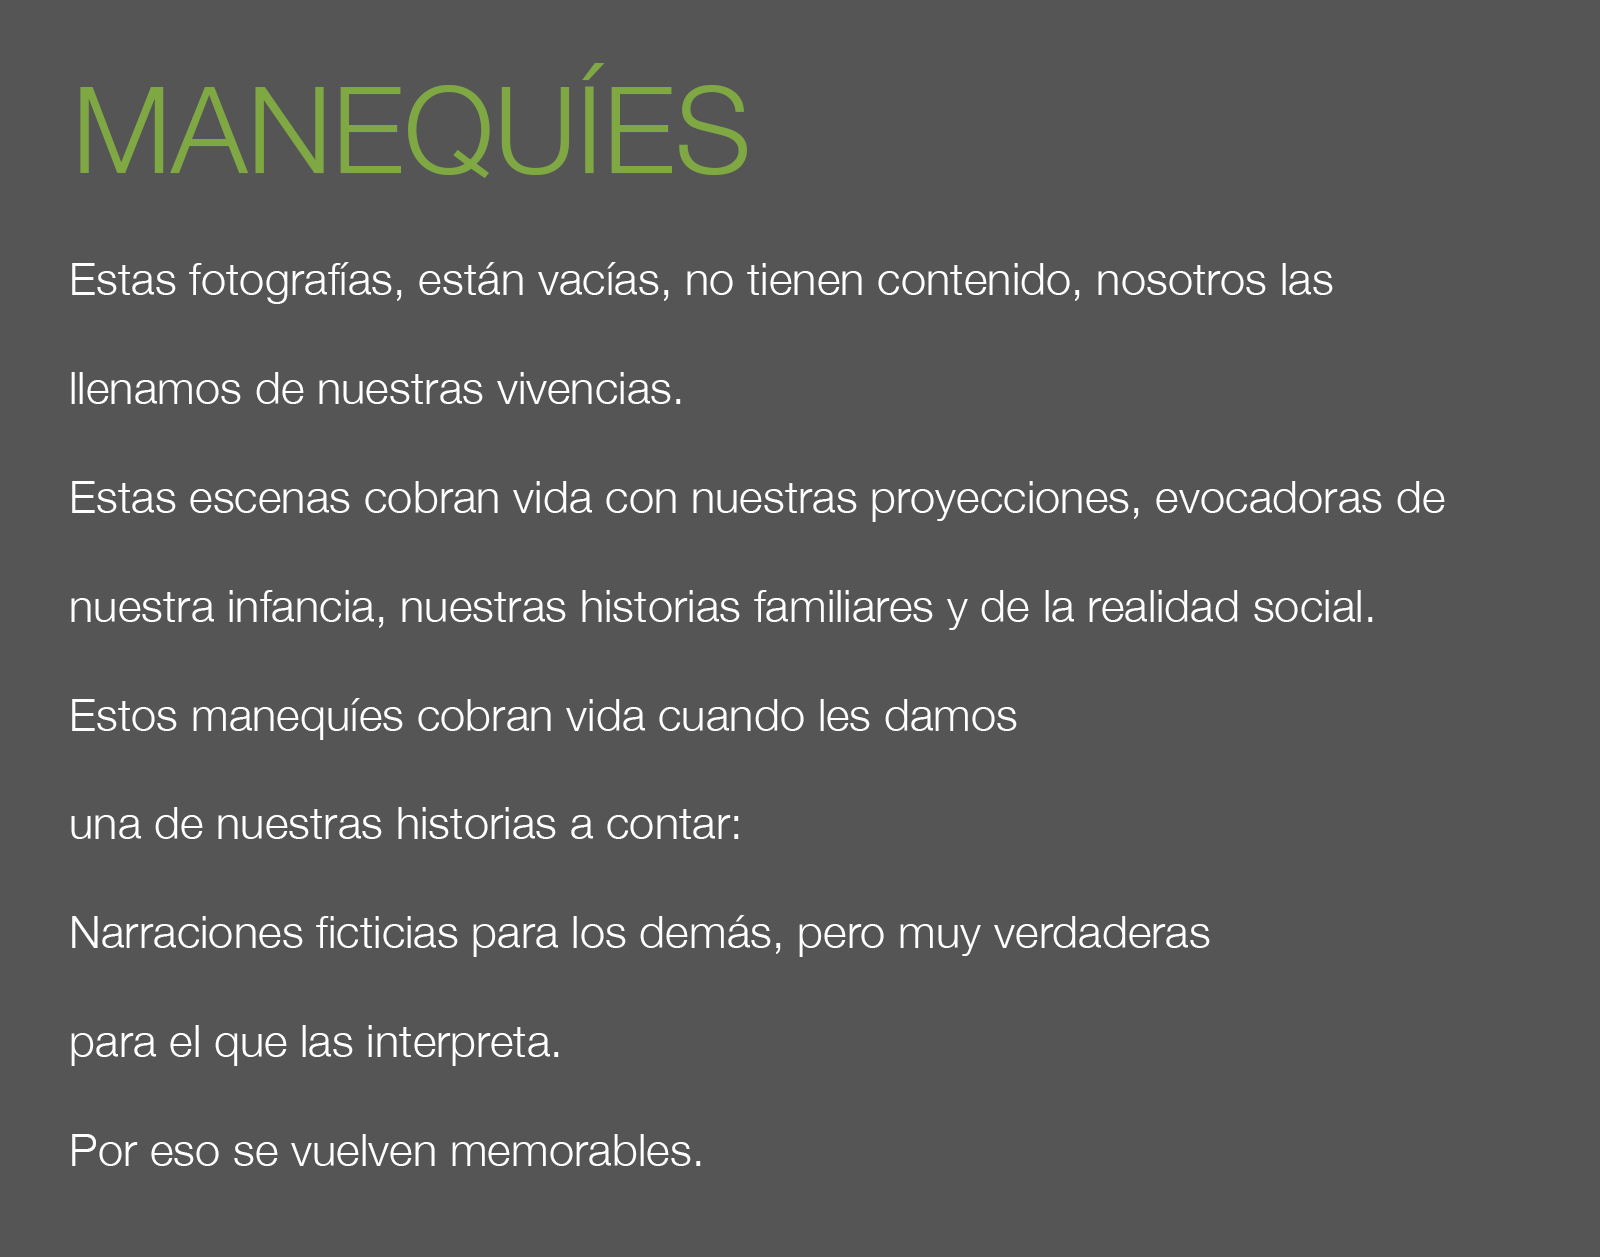 MANEQUIES TEXTO  WEB